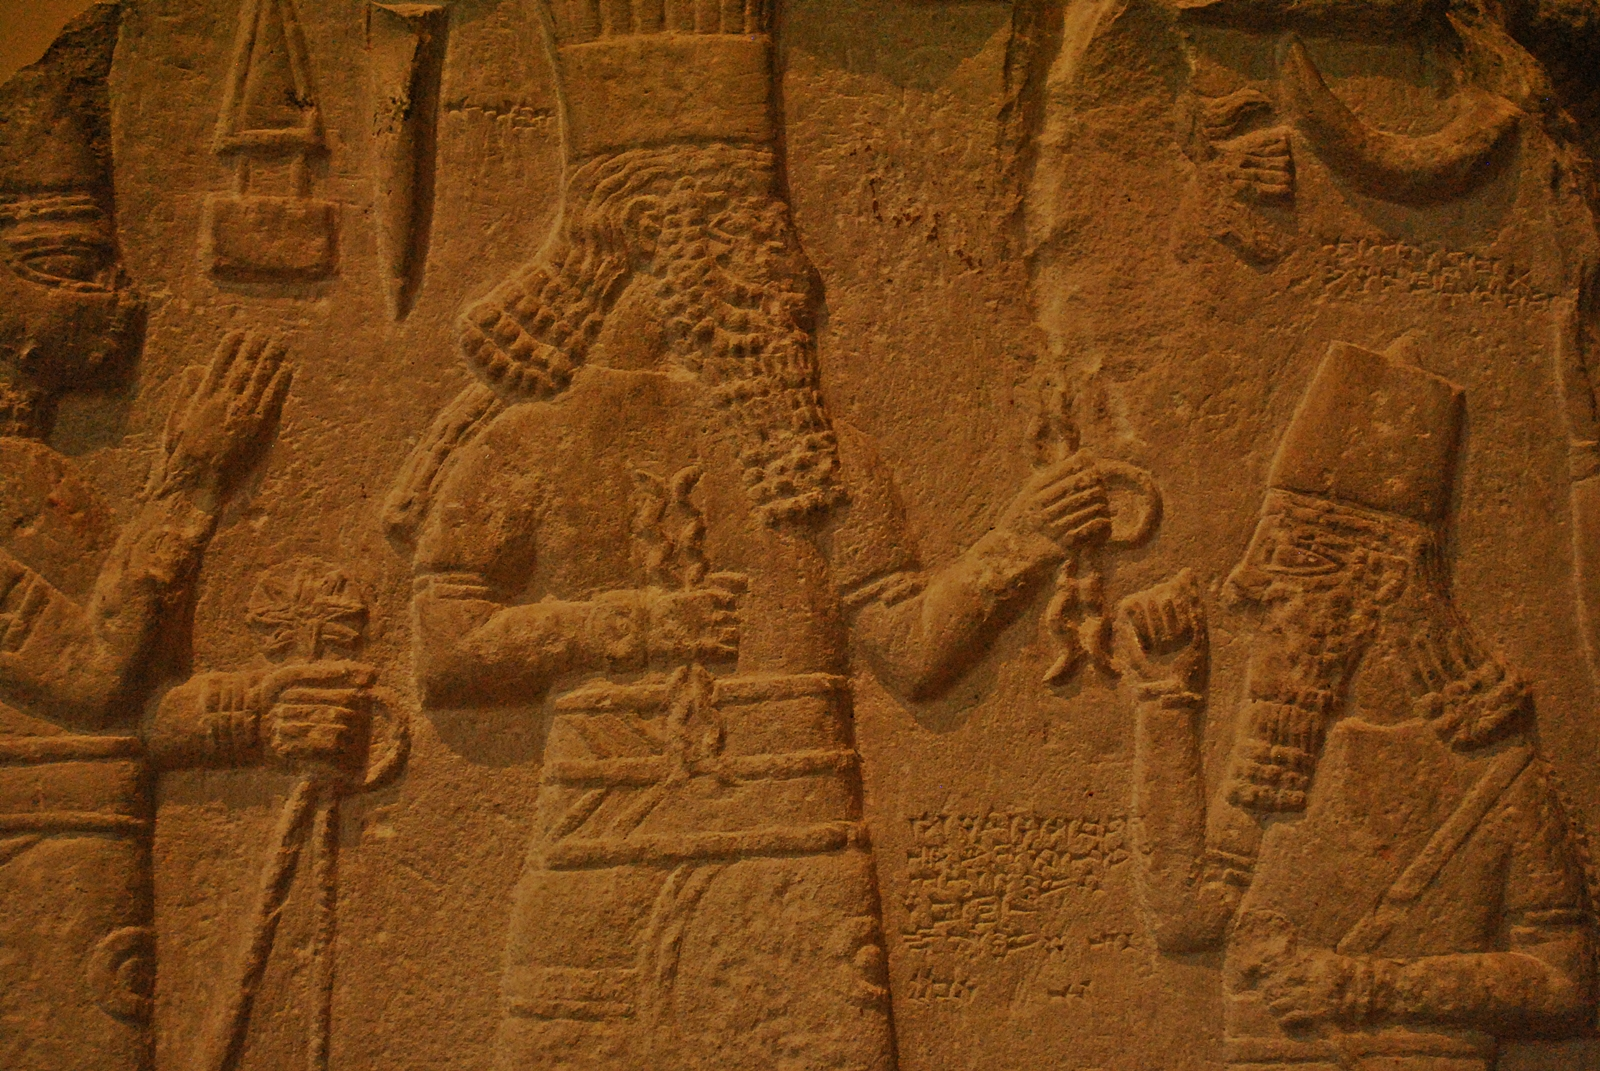 gods of Assyria Shala, her spouse Adad, & an Assyrian unidentified king, a time long, long ago, when the giant alien gods walked upon the Eartg, & spoke with earthlings